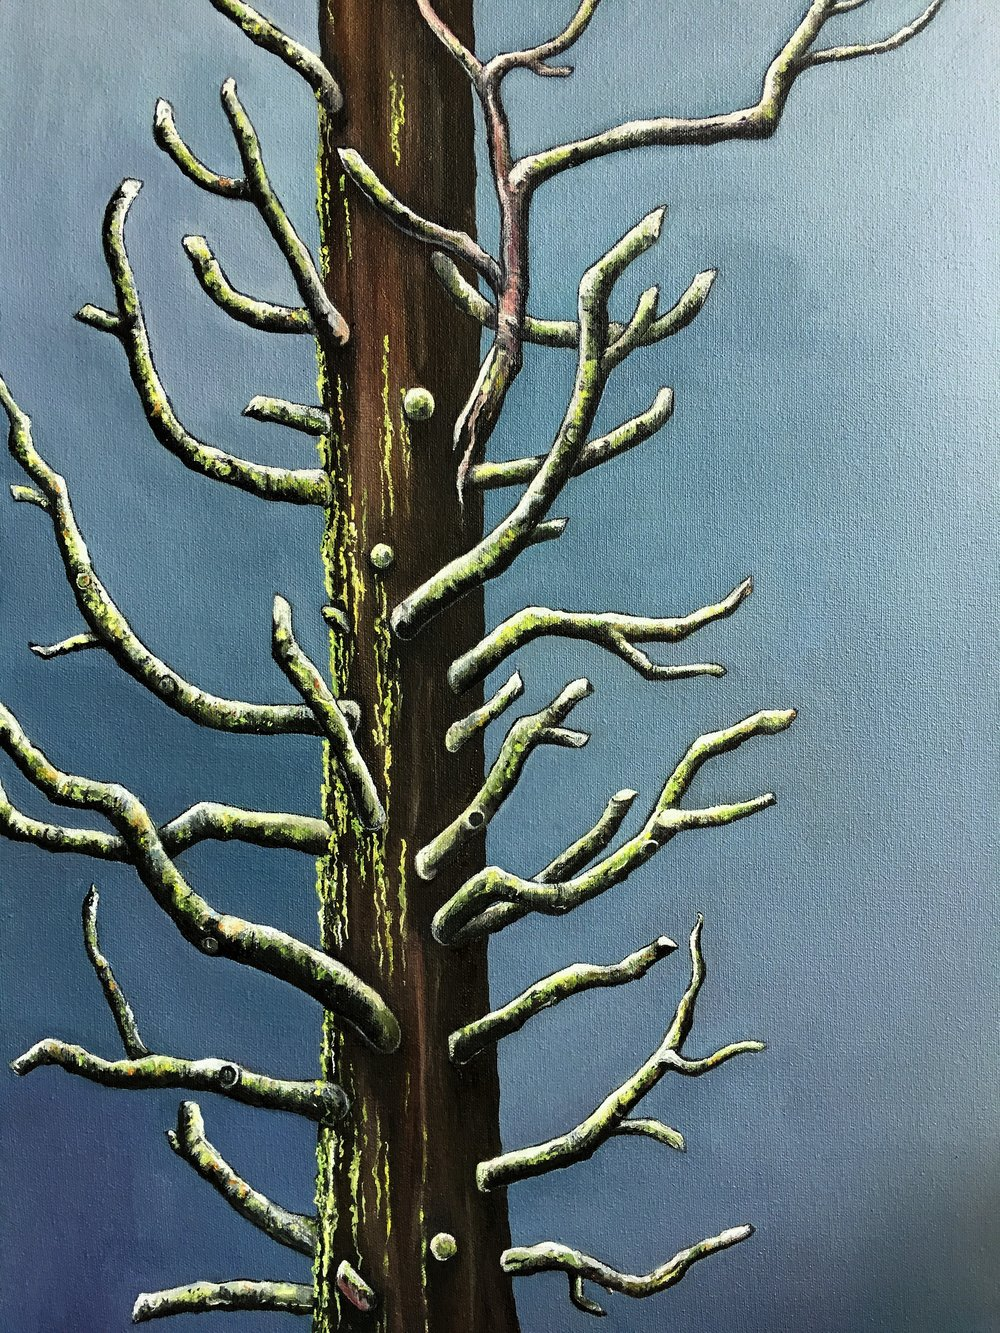 Winter Tree , 2017 Oil on canvas, 24 x 18 inches